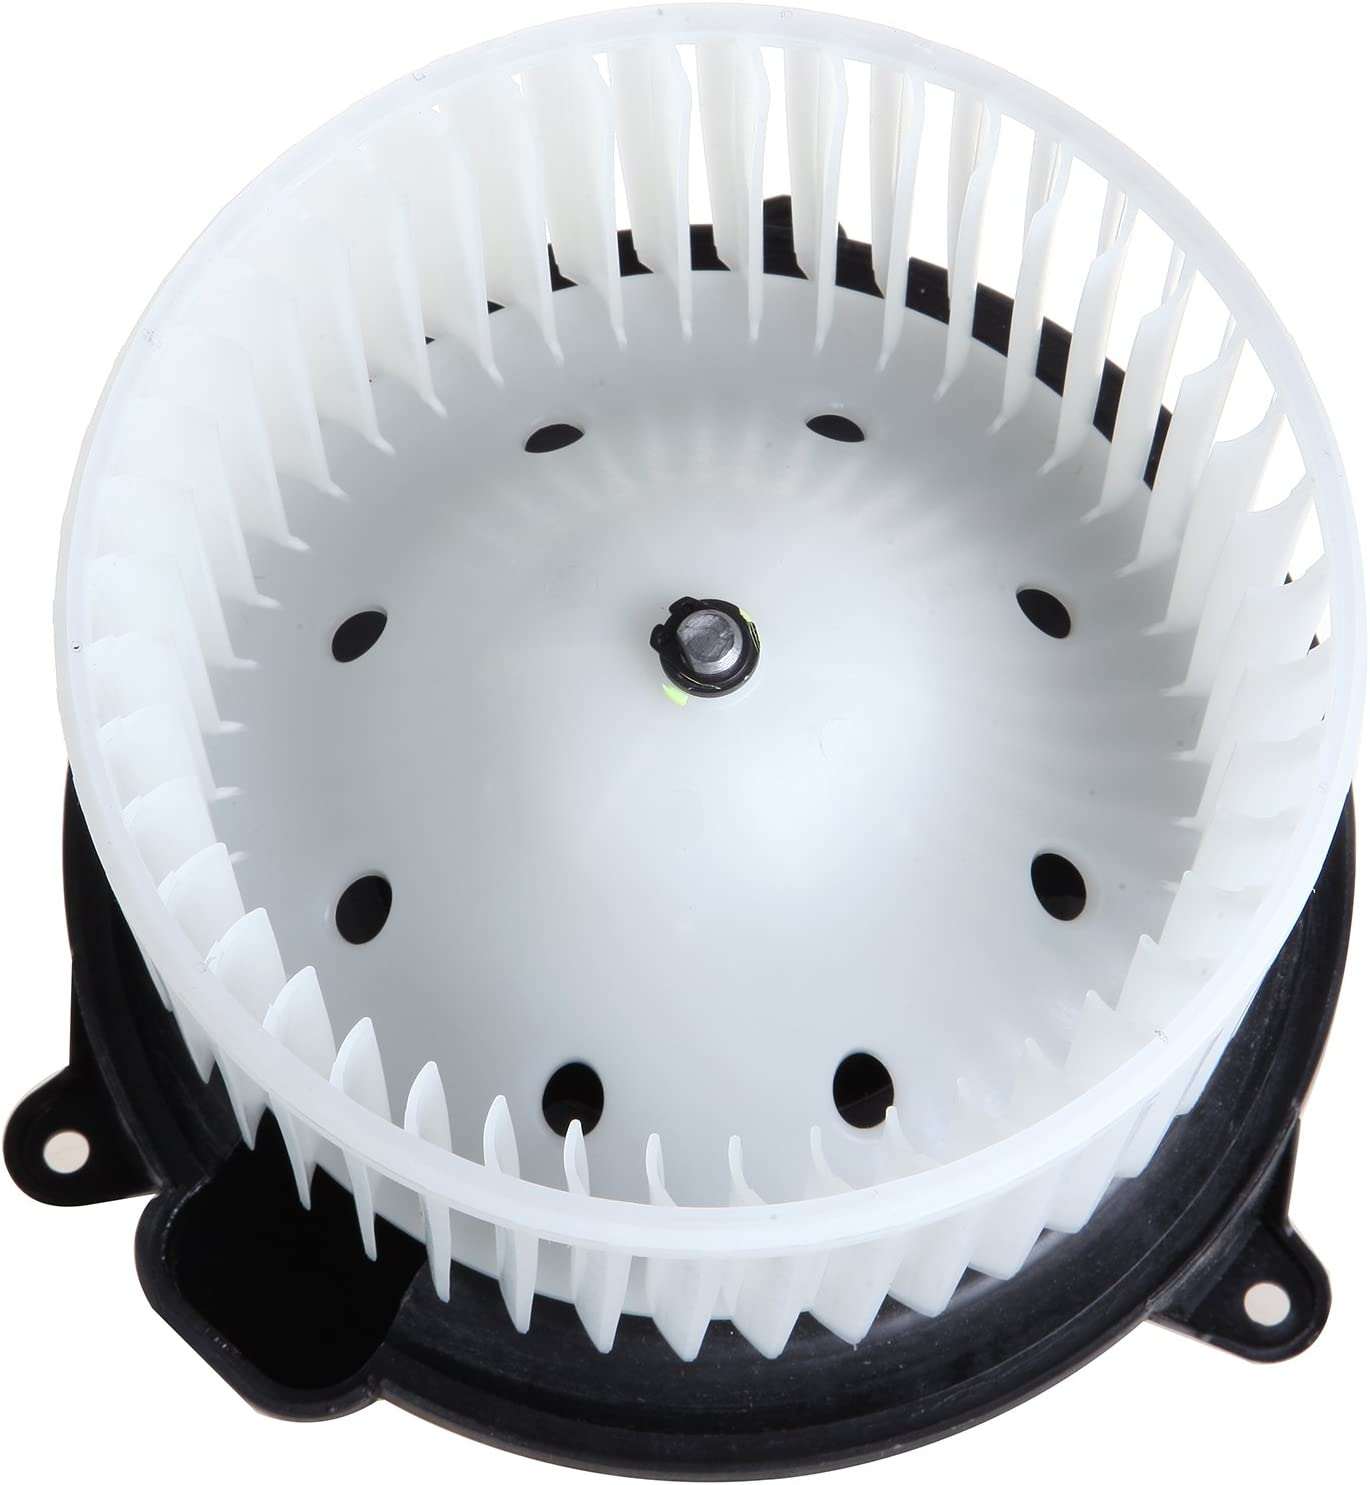 OCPTY A//C Heater Blower Motor ABS w//Fan Cage Air Conditioning HVAC Replacement fit for 2008-2012 for Infiniti EX35//2003-2012 for Infiniti FX35//2003-2007 for Nissan 350Z//2009-2014 for Nissan 370Z